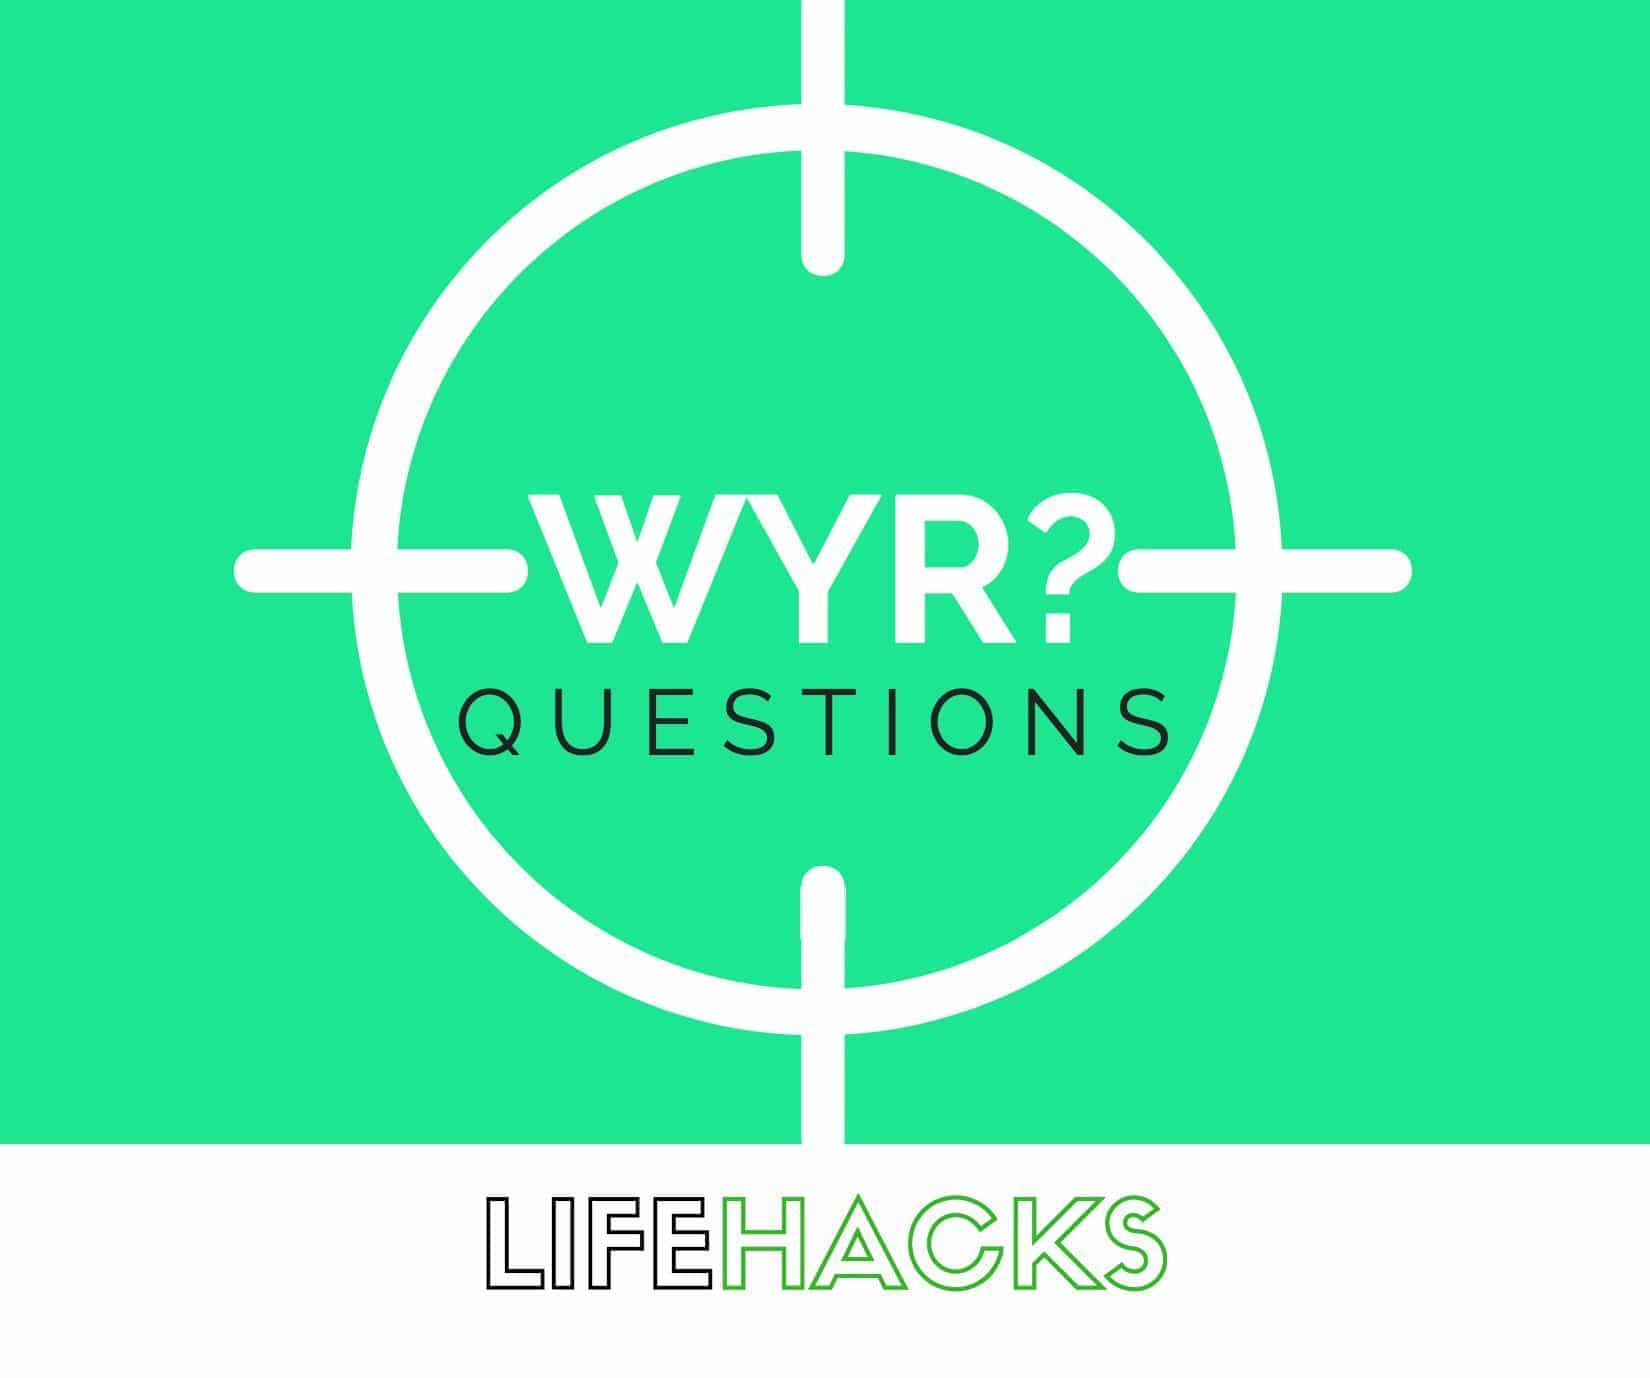 LifeHacks - Dirty Would you rather questions